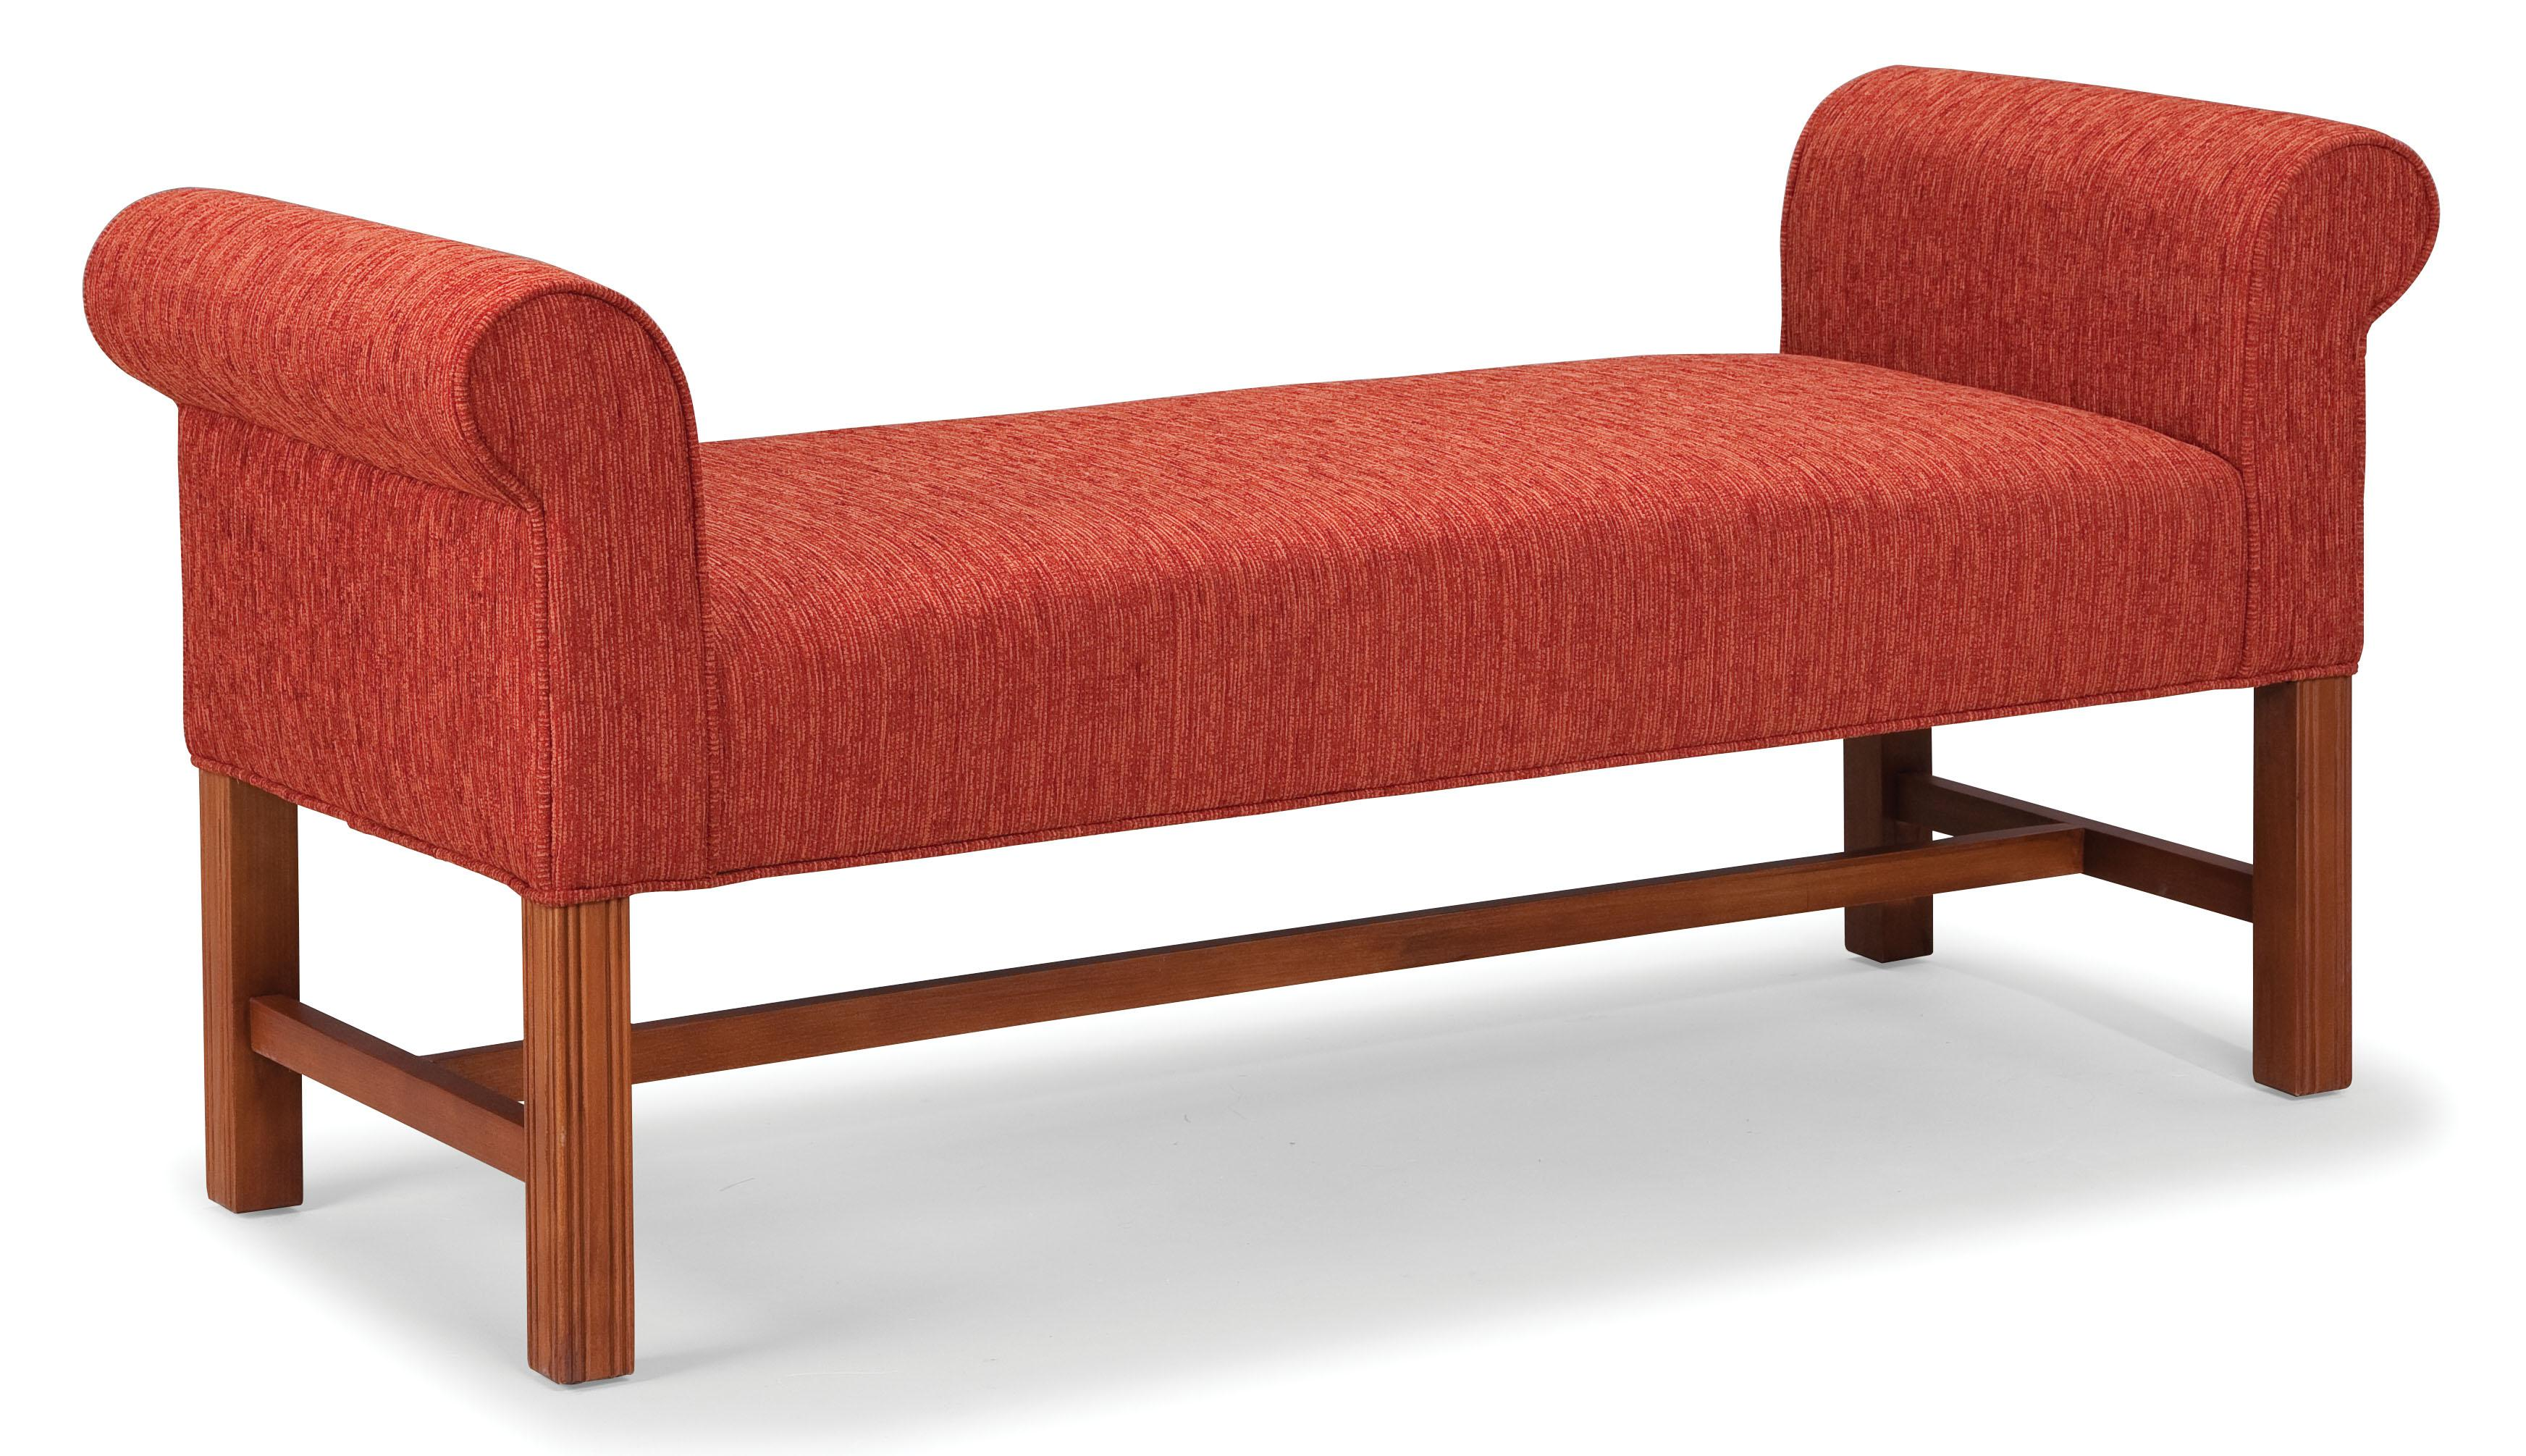 Fairfield Benches Bench - Item Number: 1700-10